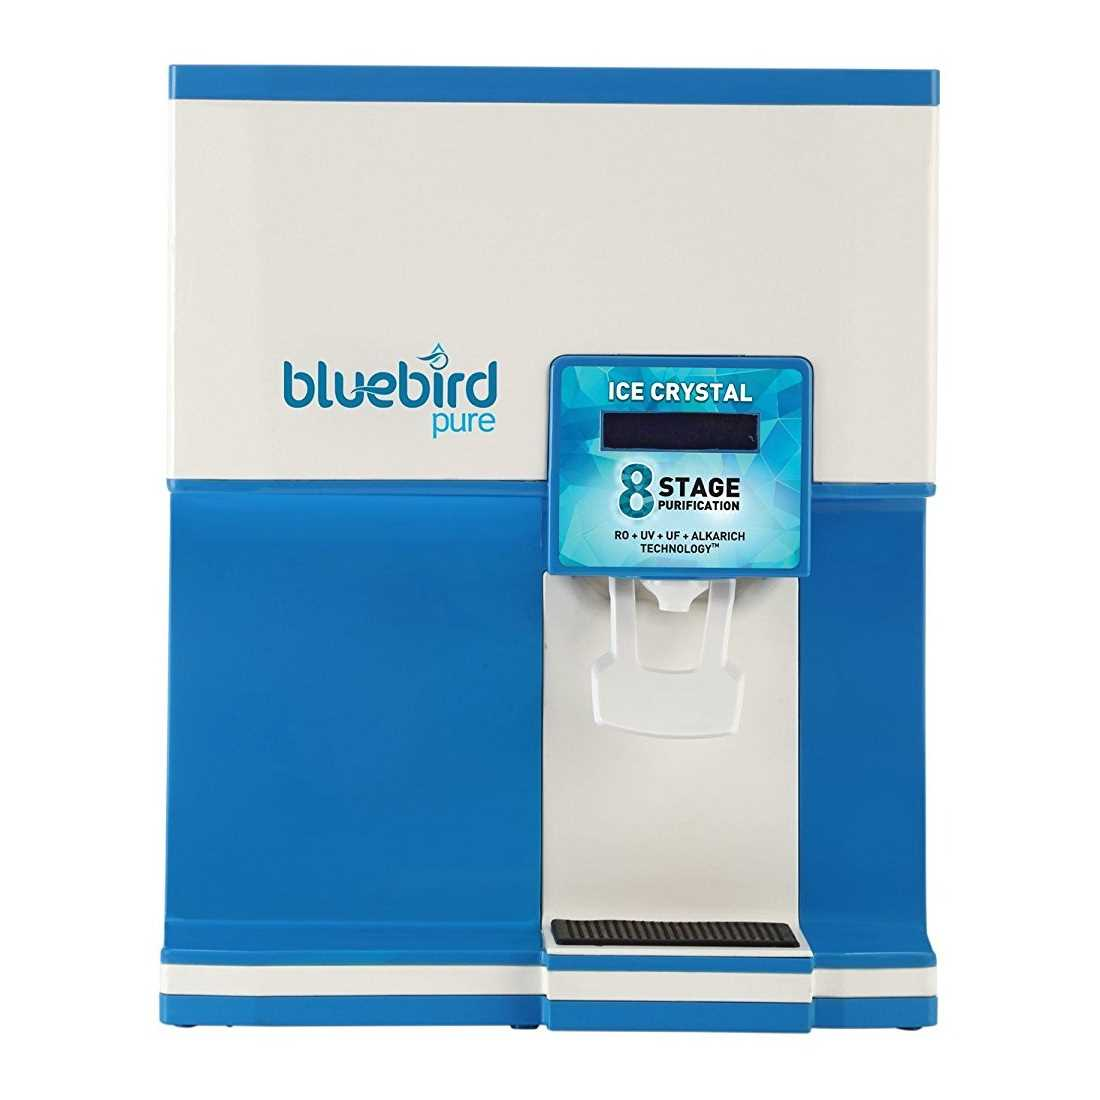 Bluebird Pure Ice Crystal 8 Litre RO UV UF Water Purifier